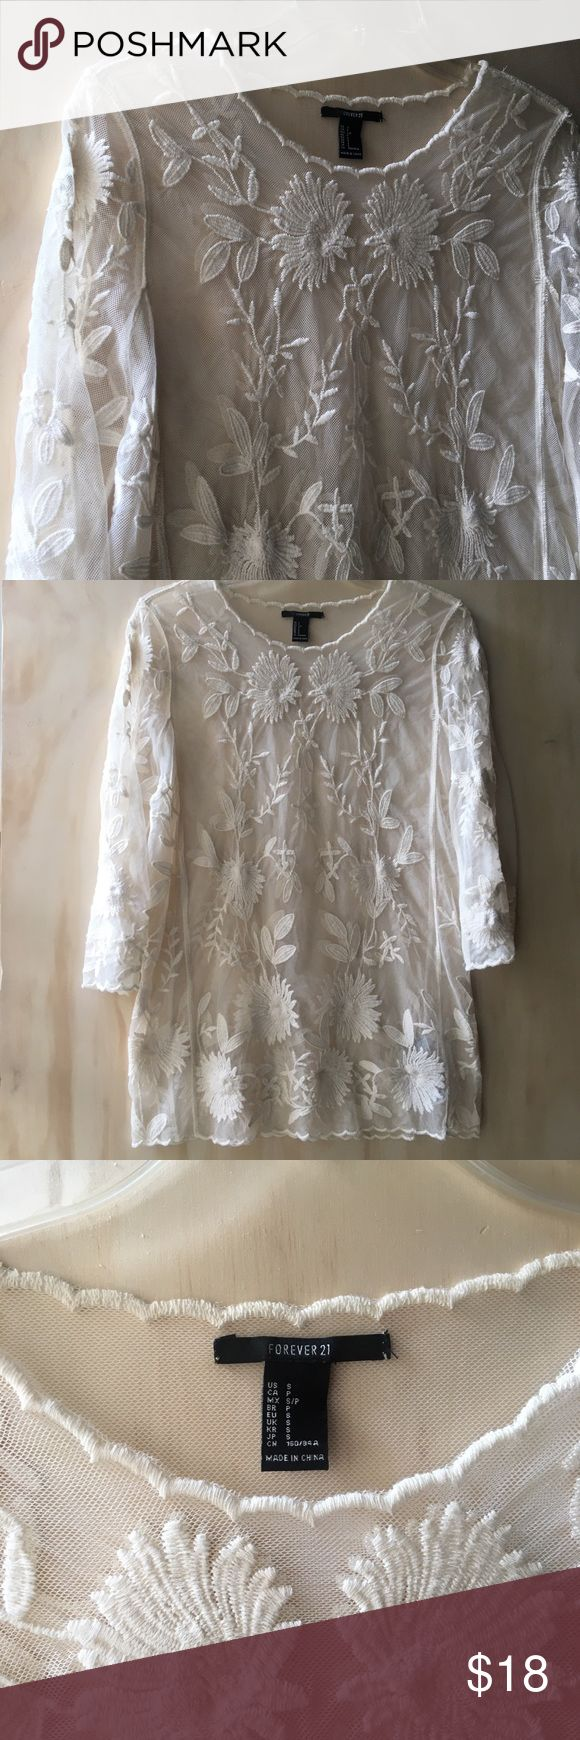 Sheer Floral Embroidered Boho White/Cream Lace Top Gorgeous sheer mesh blouse with embroidered floral appliqué design and scalloped trim. Wear over a turtleneck, dress, tank or bandeau. Neutral ivory/cream color. 3/4 length sleeves. Size small. Excellent condition, like new.   Sorry, no trades. Forever 21 Tops Blouses